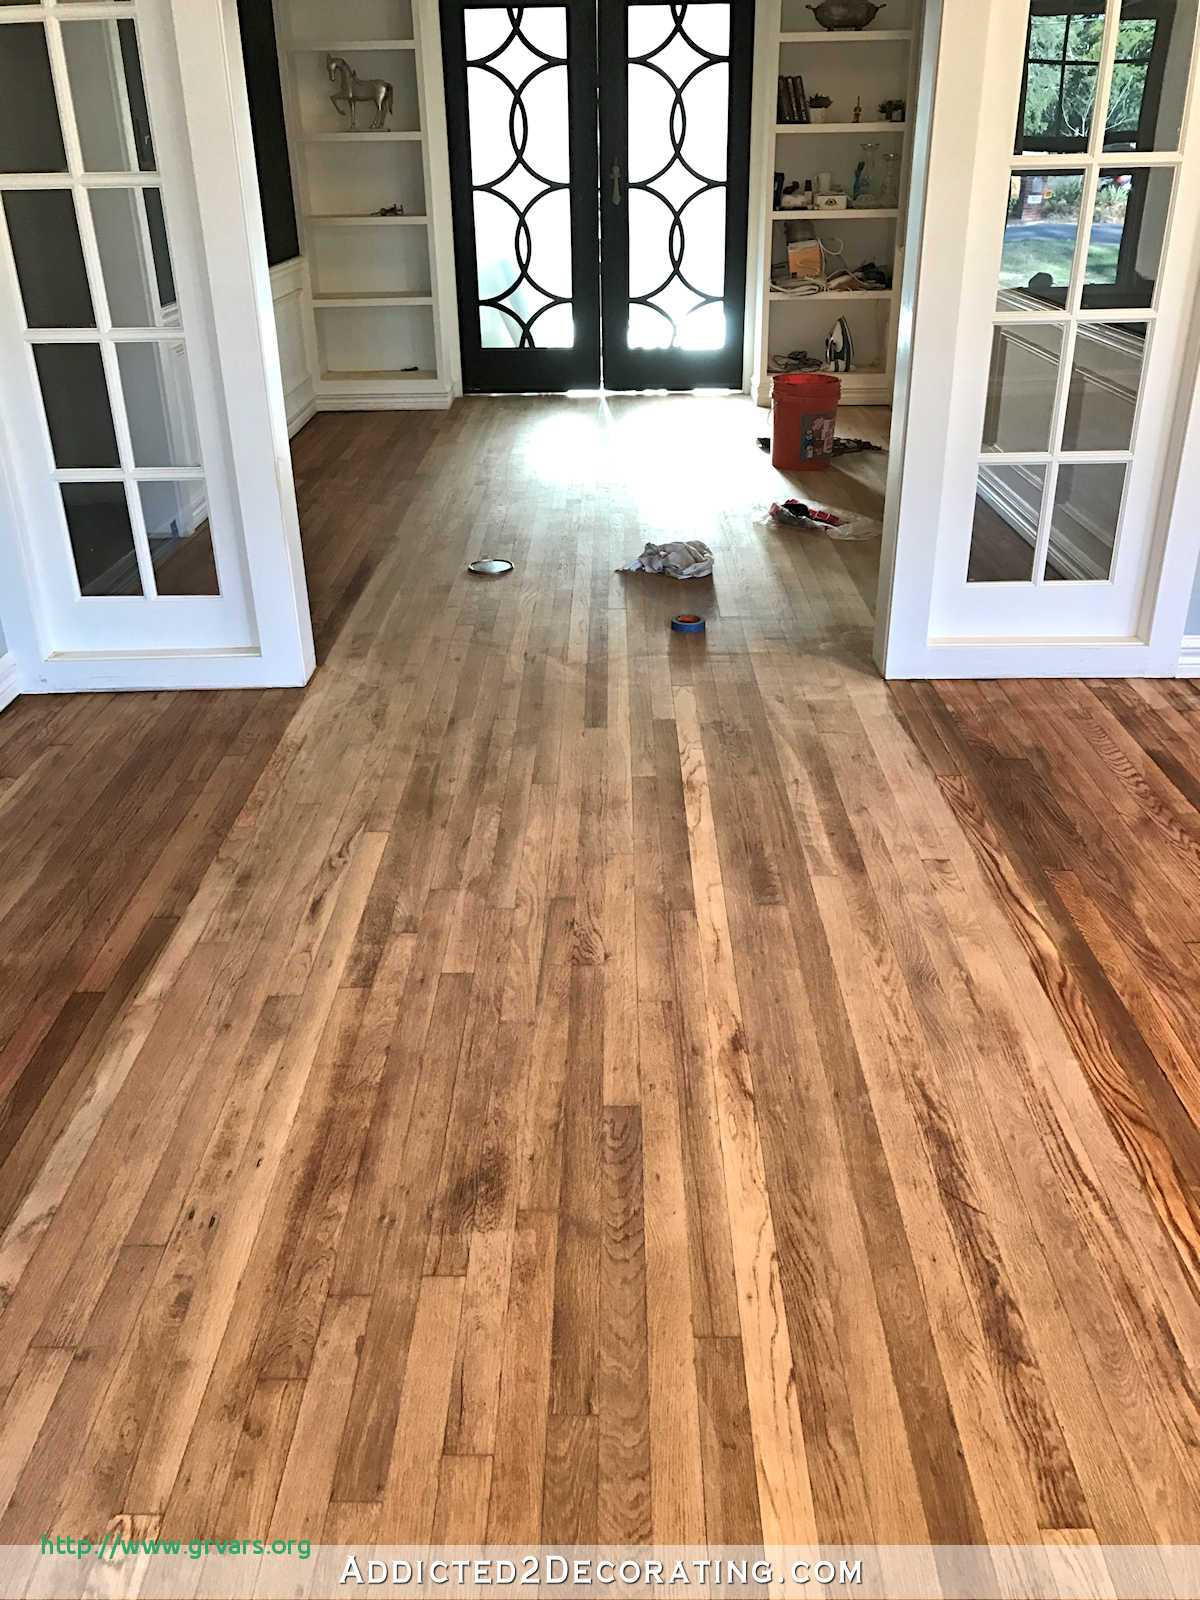 hardwood floor repair water damage of 15 nouveau how to fix wood floors from water damage ideas blog with how to fix wood floors from water damage luxe adventures in staining my red oak hardwood